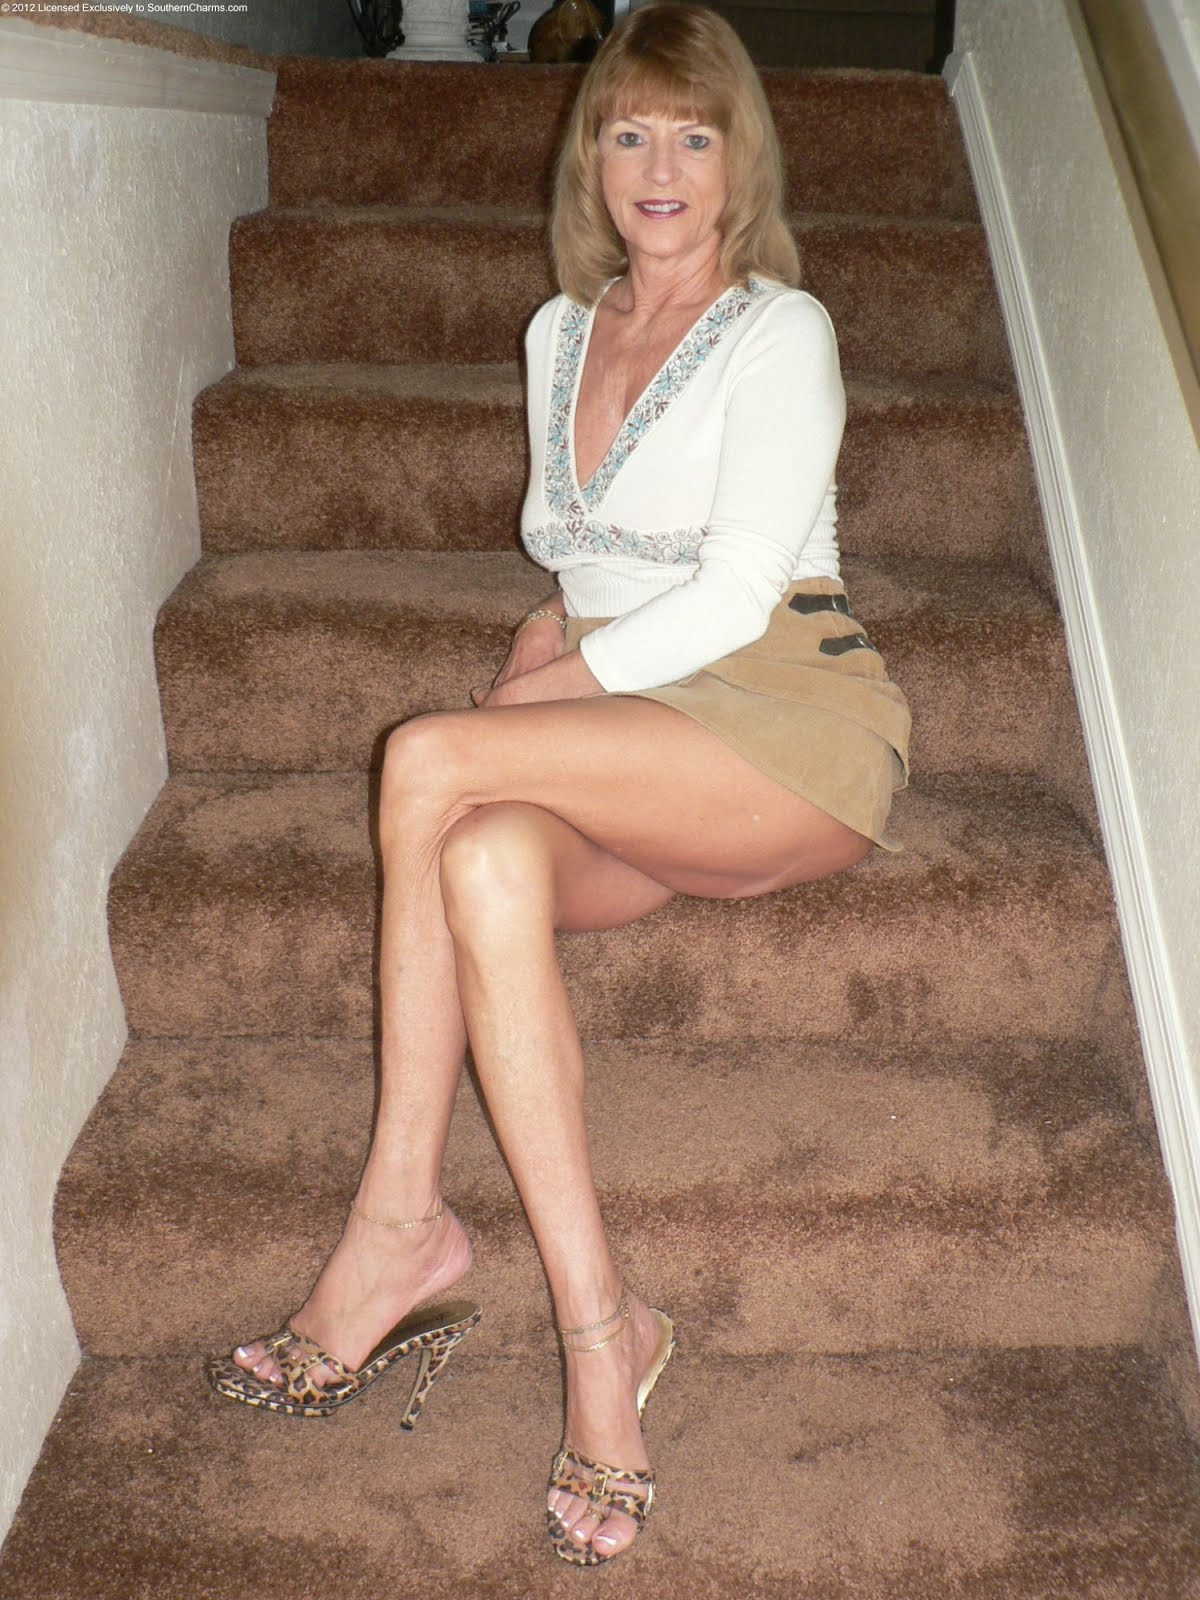 Brooke ex southern charms galleries - ugagme